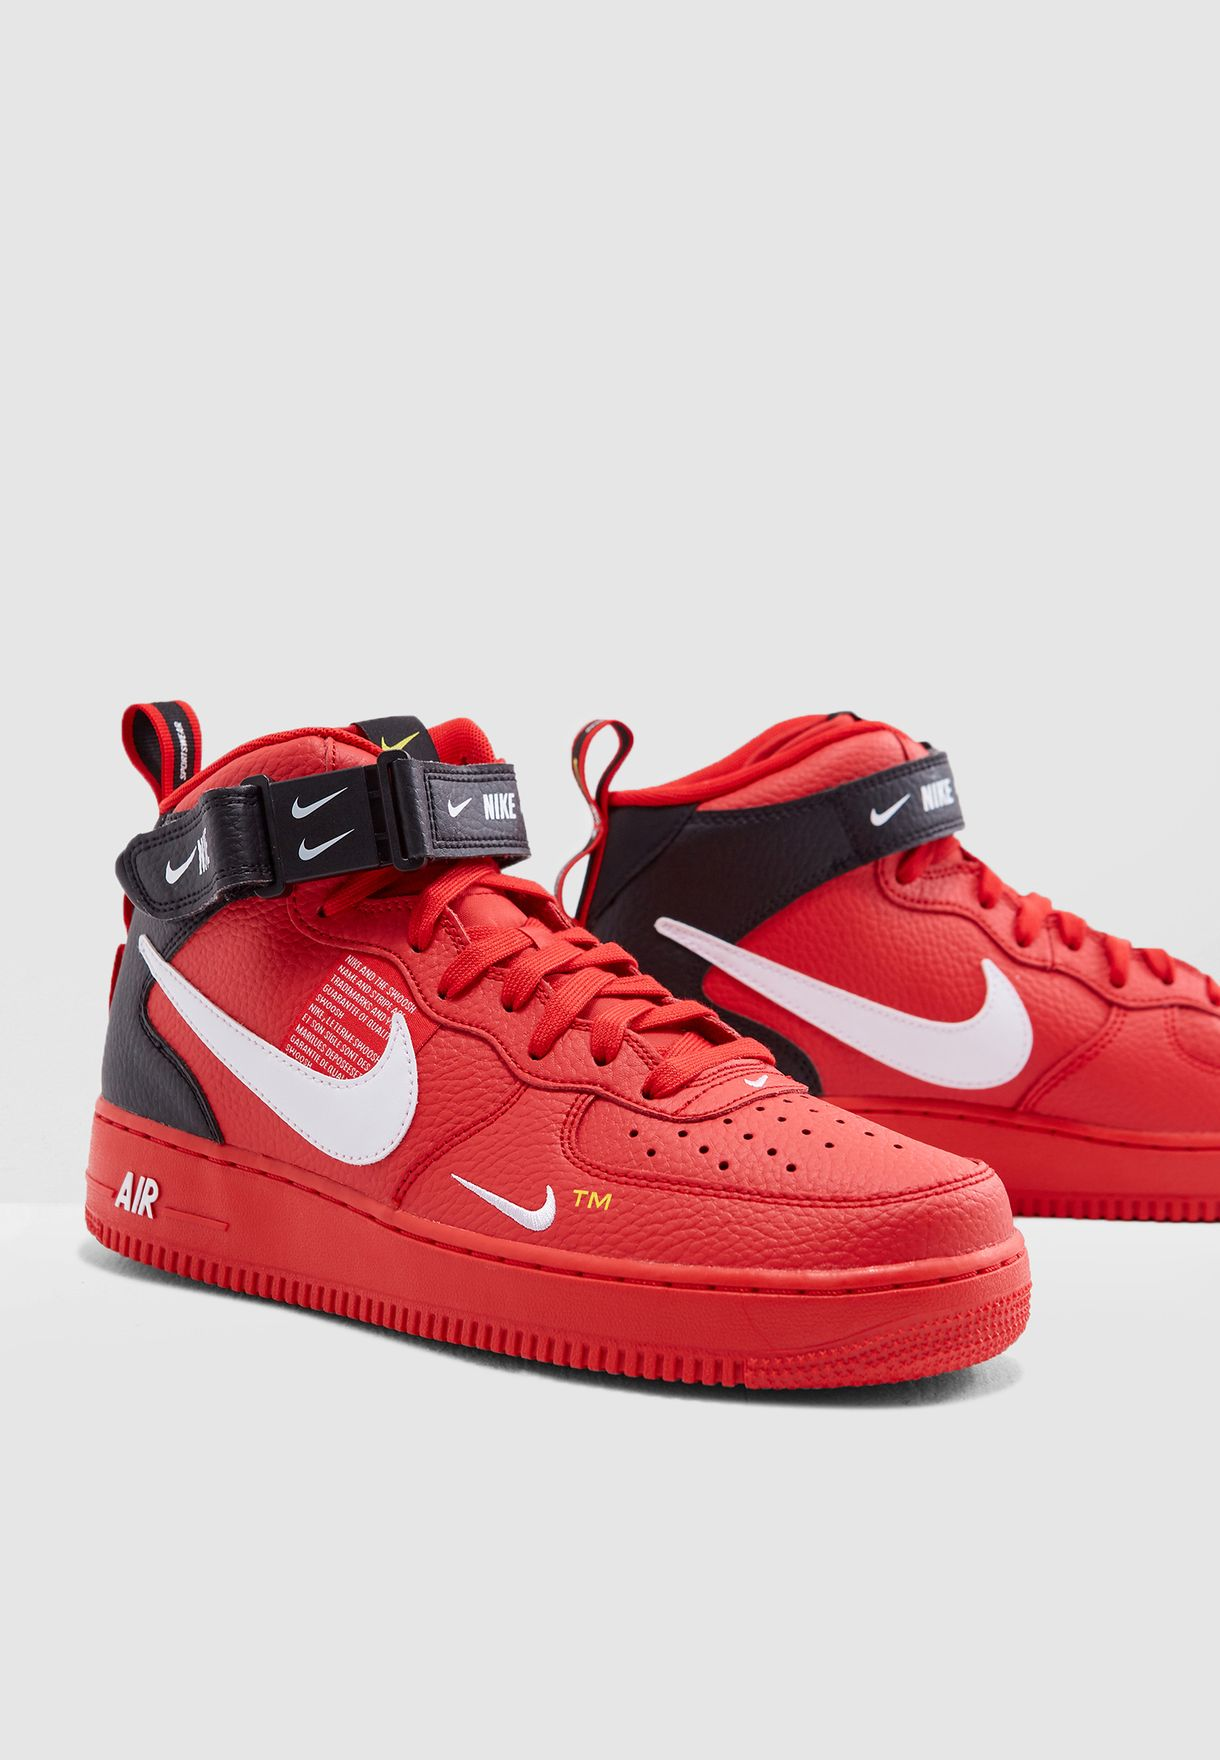 eb93289767a4 Shop Nike red Air Force 1 Mid   39 07 LV8 804609-605 for Men in ...